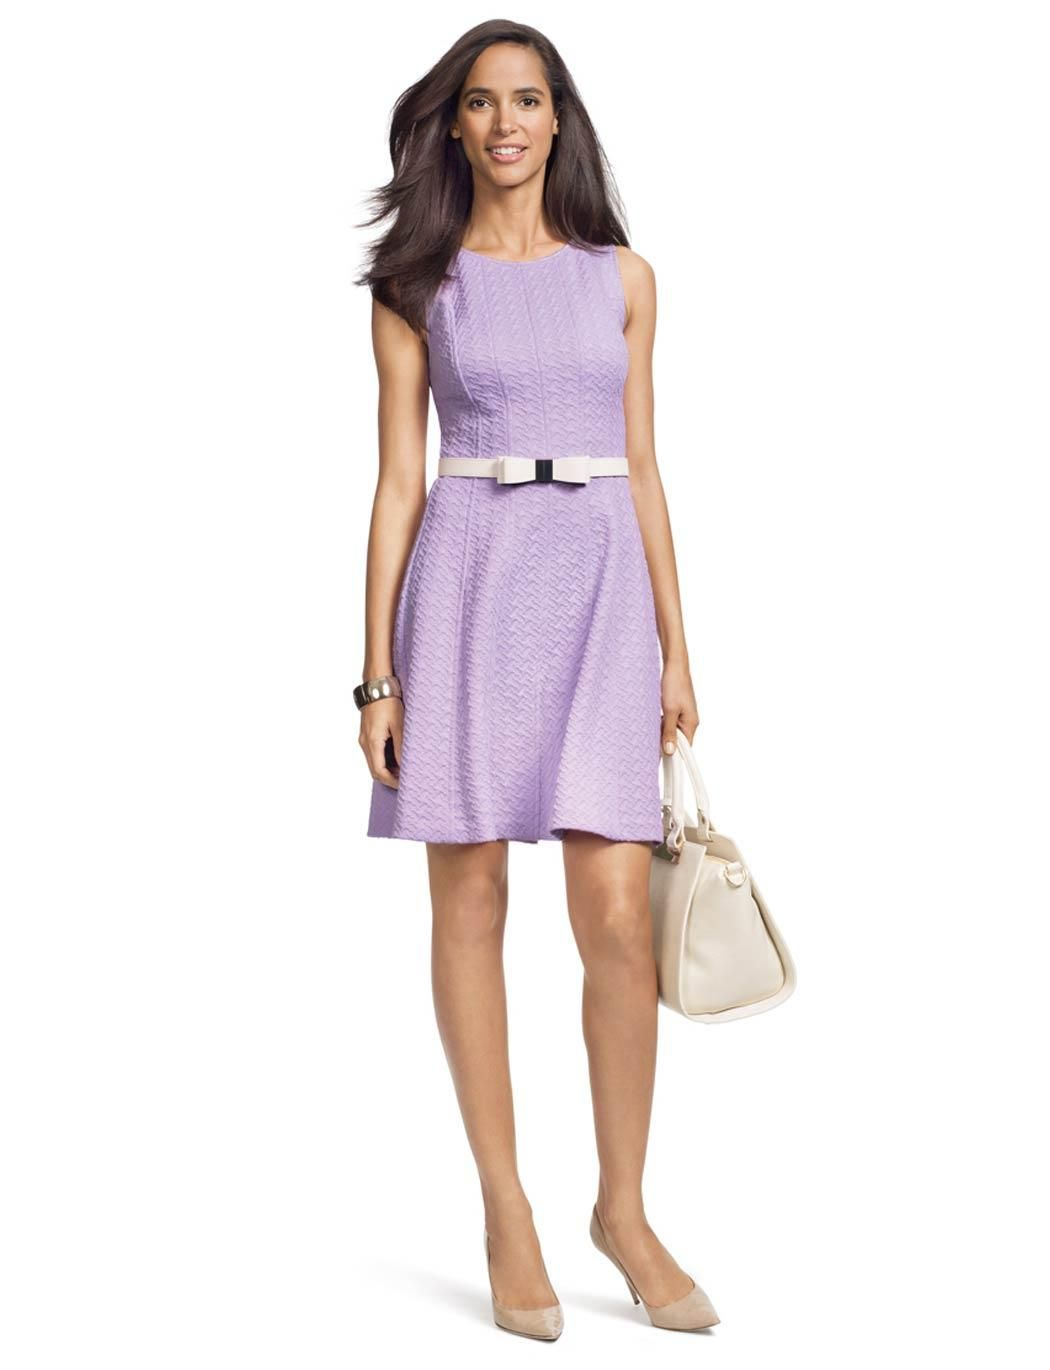 Wedding reception create this look with our textured fit u flare